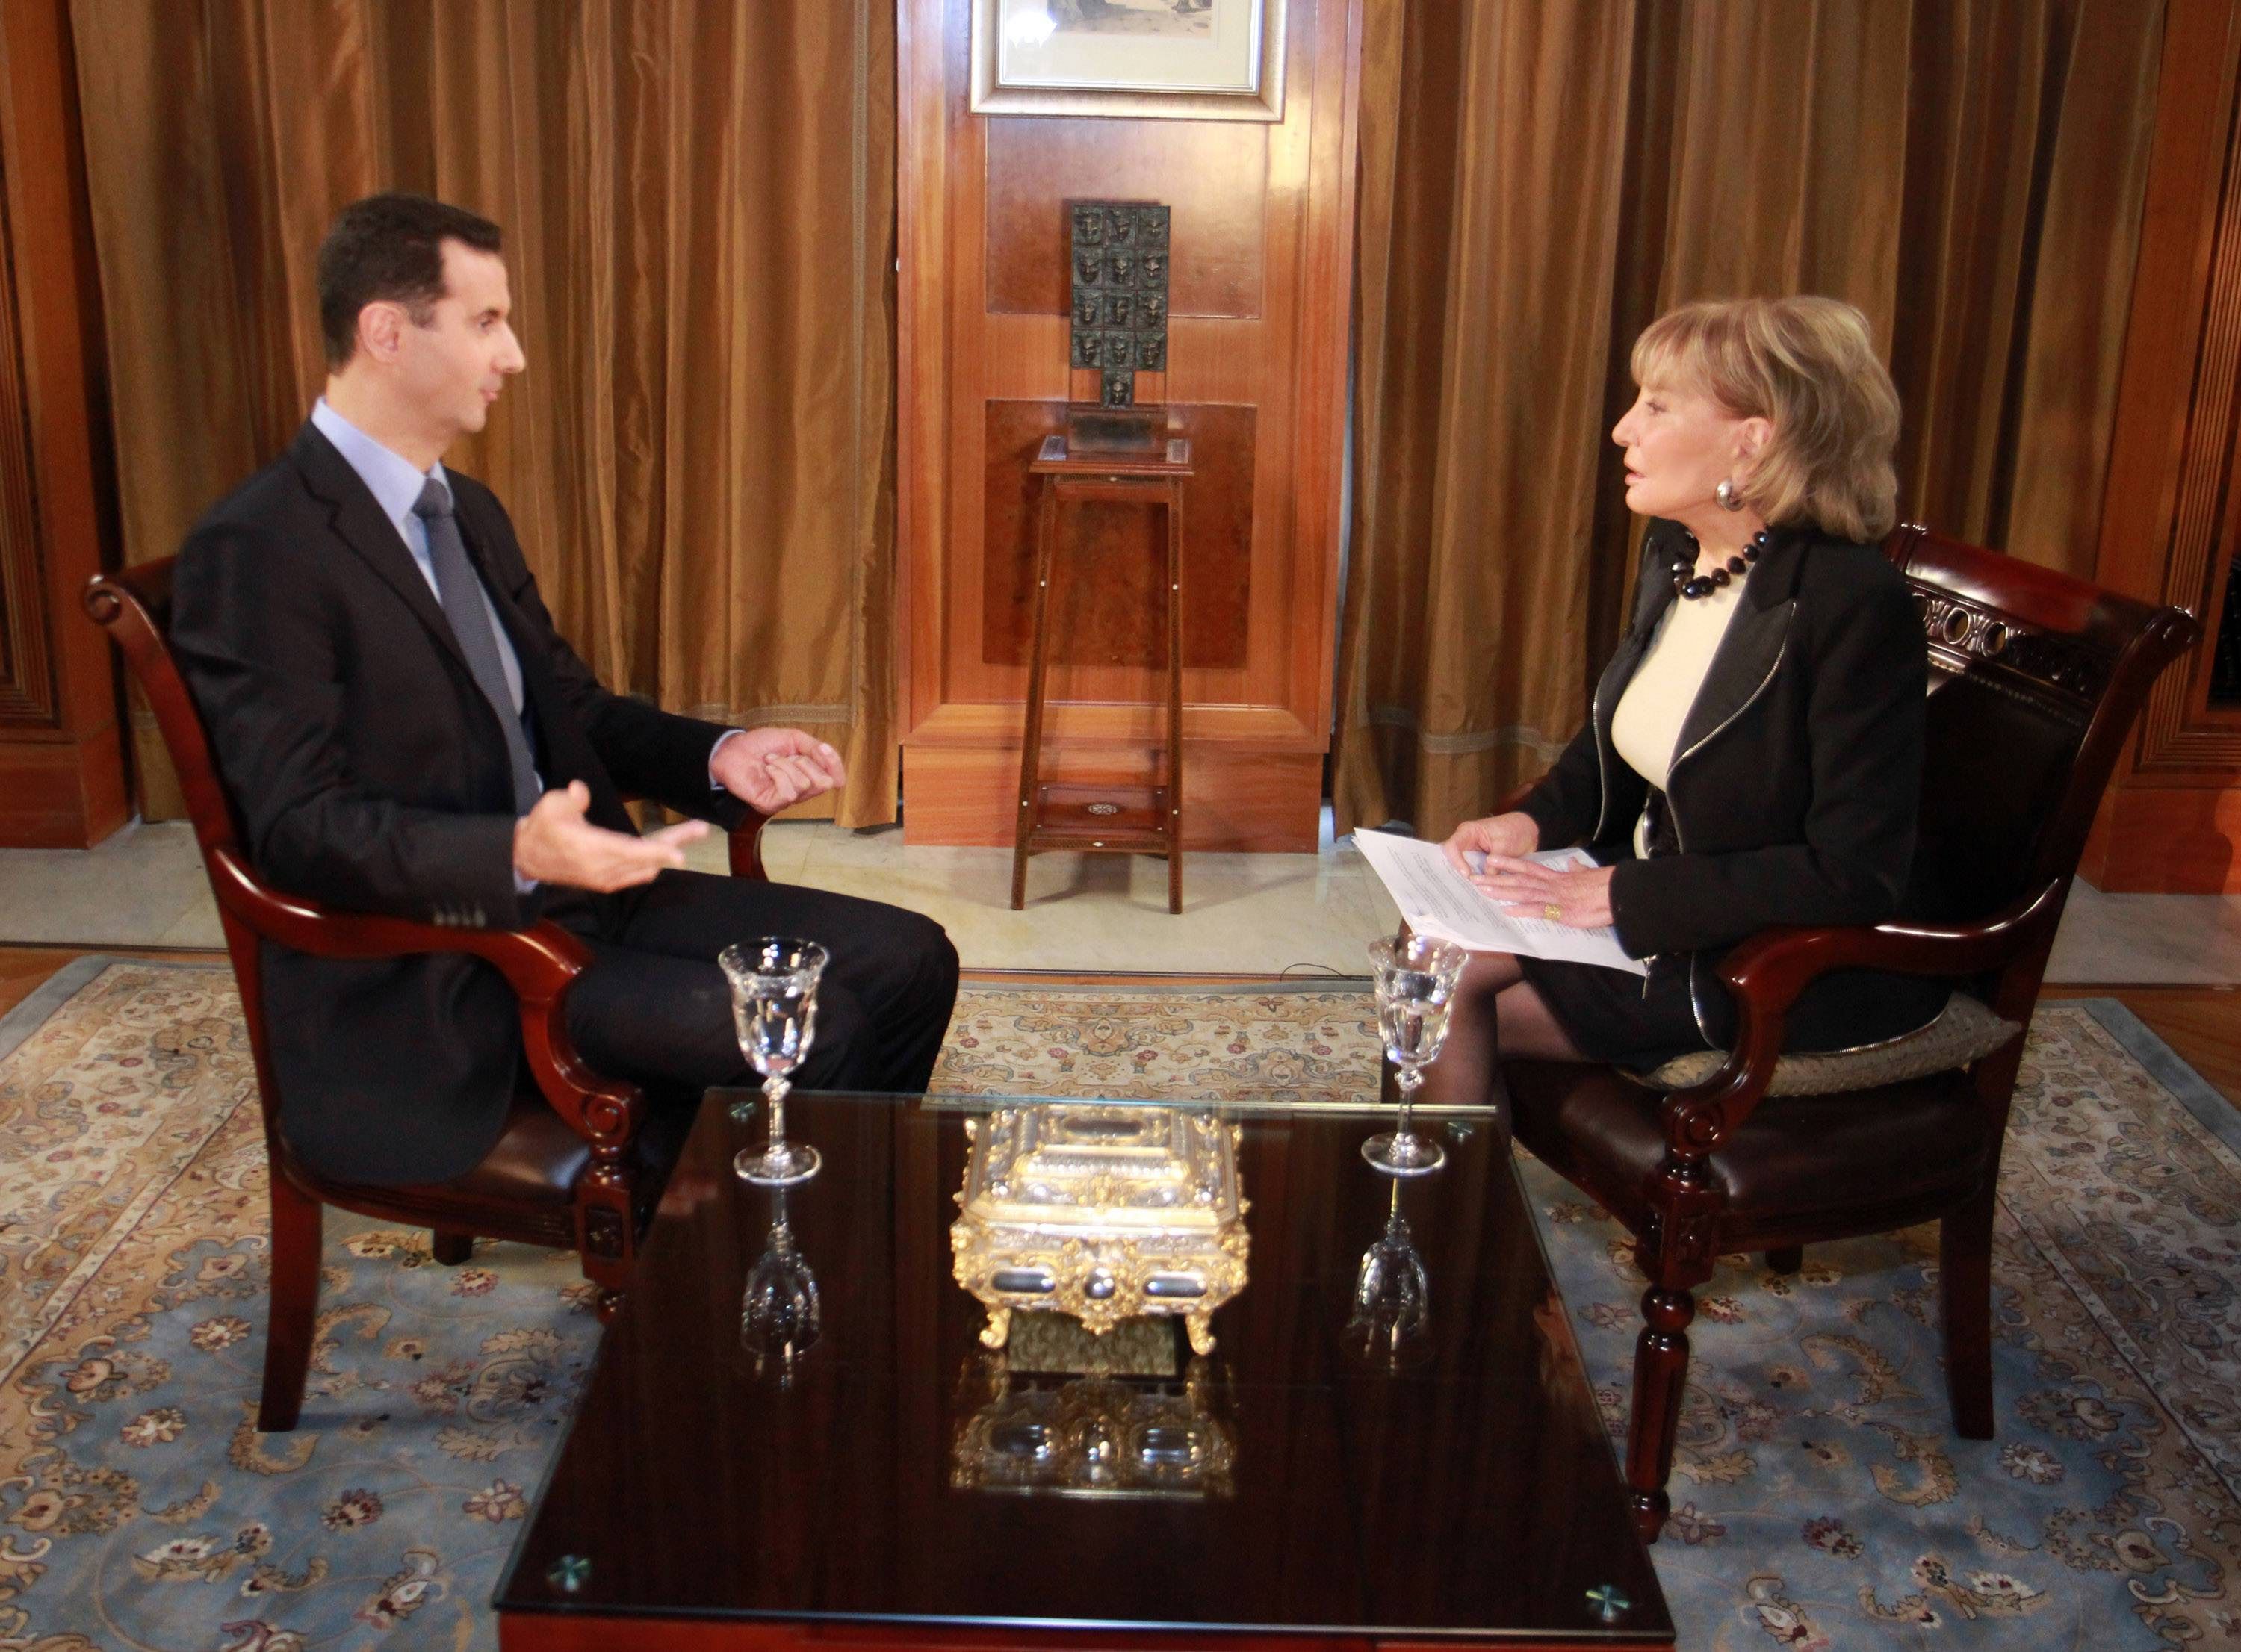 Syrian President Bashar al-Assad speaks with ABC News Anchor Barbara Walters in an interview that aired on Dec. 7, 2011. Though she's retiring, Walters isn't completely giving up working in TV.